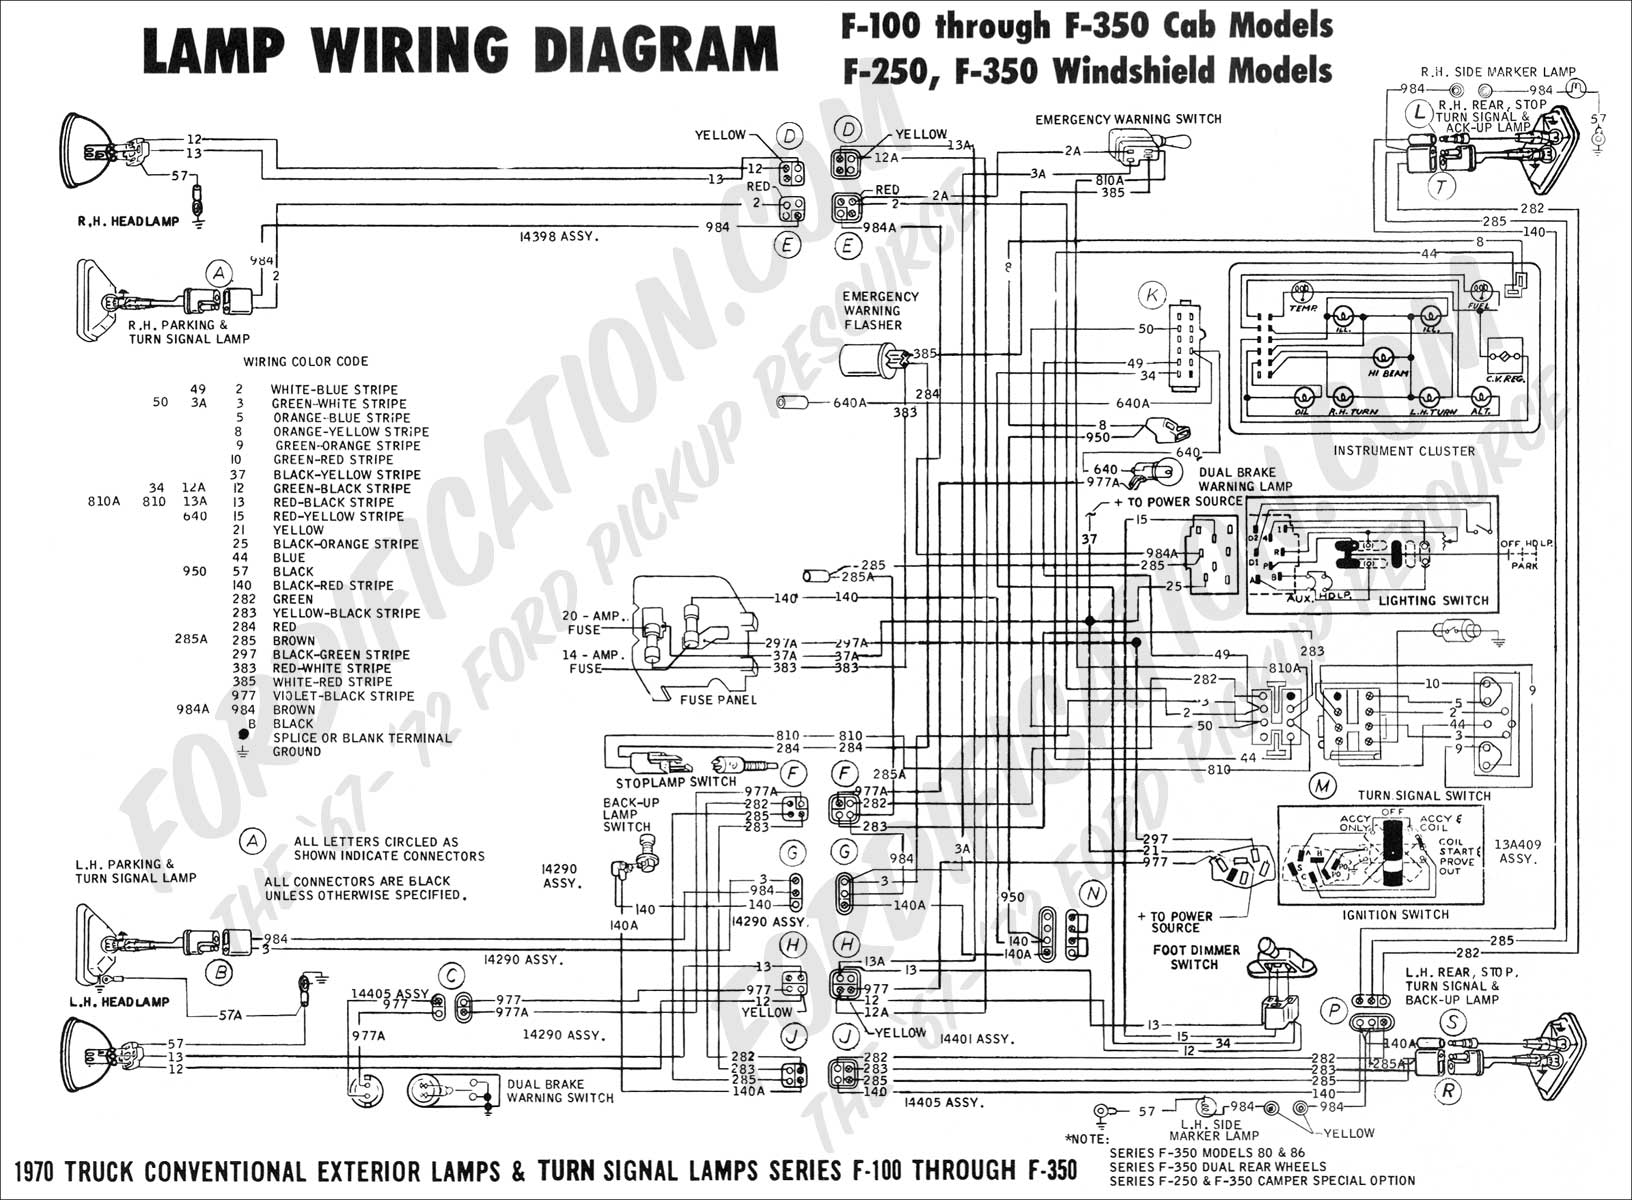 wiring diagram_70ext lights01 1986 ford f250 wiring diagram ford truck fuel system diagram 2002 ford f250 wiring diagram at reclaimingppi.co